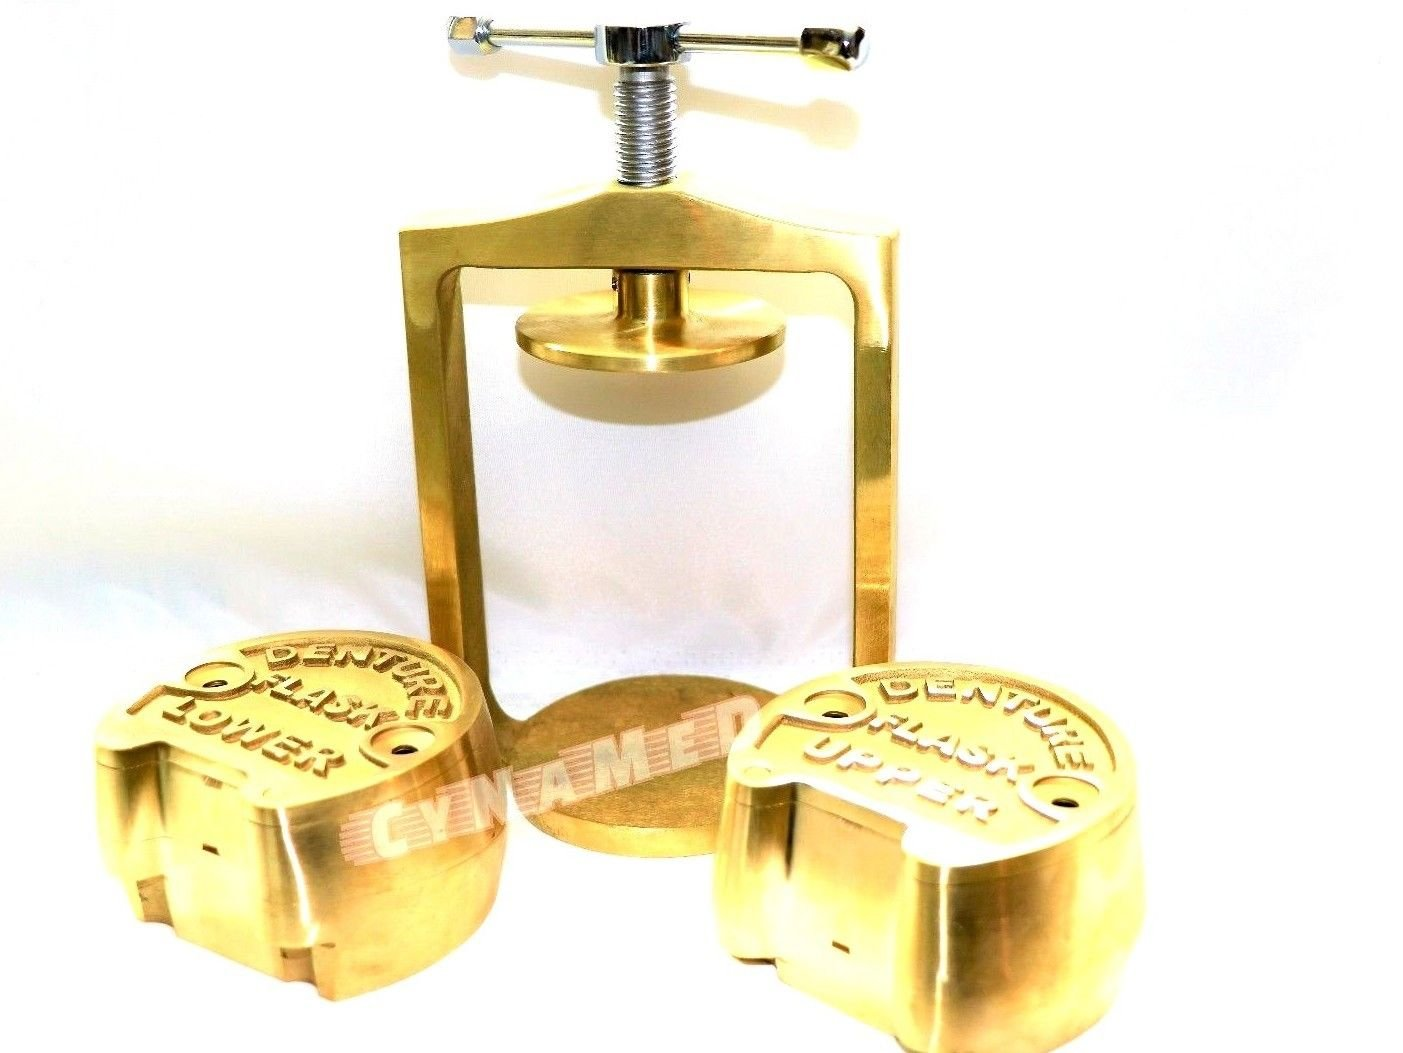 DENTAL LABORATORY SPRING PRESS COMPRESS WITH TWO FLASK ORIGINAL BRASS - 3 PIECES ( CYNAMED )